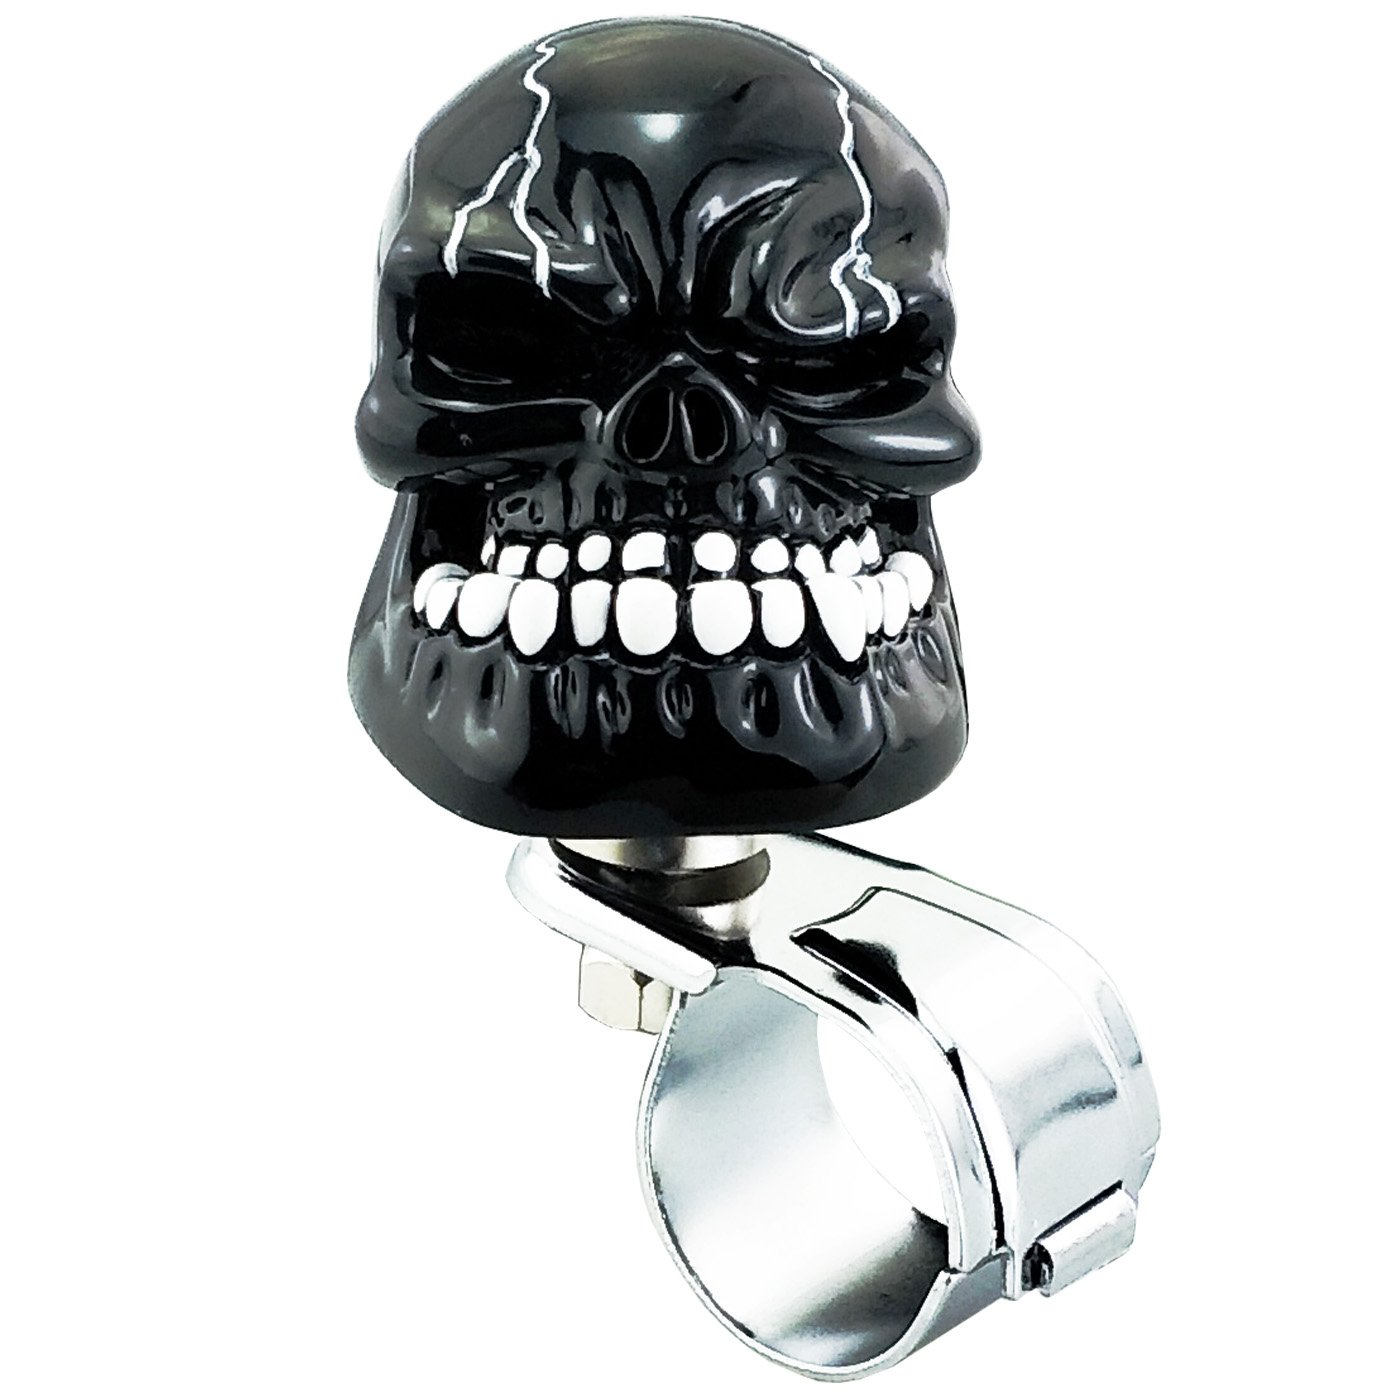 Black Lunsom Skull Steering Wheel Knob Car Suicide Spinner Grip Turning Booster Driving Power Handle Fit Universal Vehicle